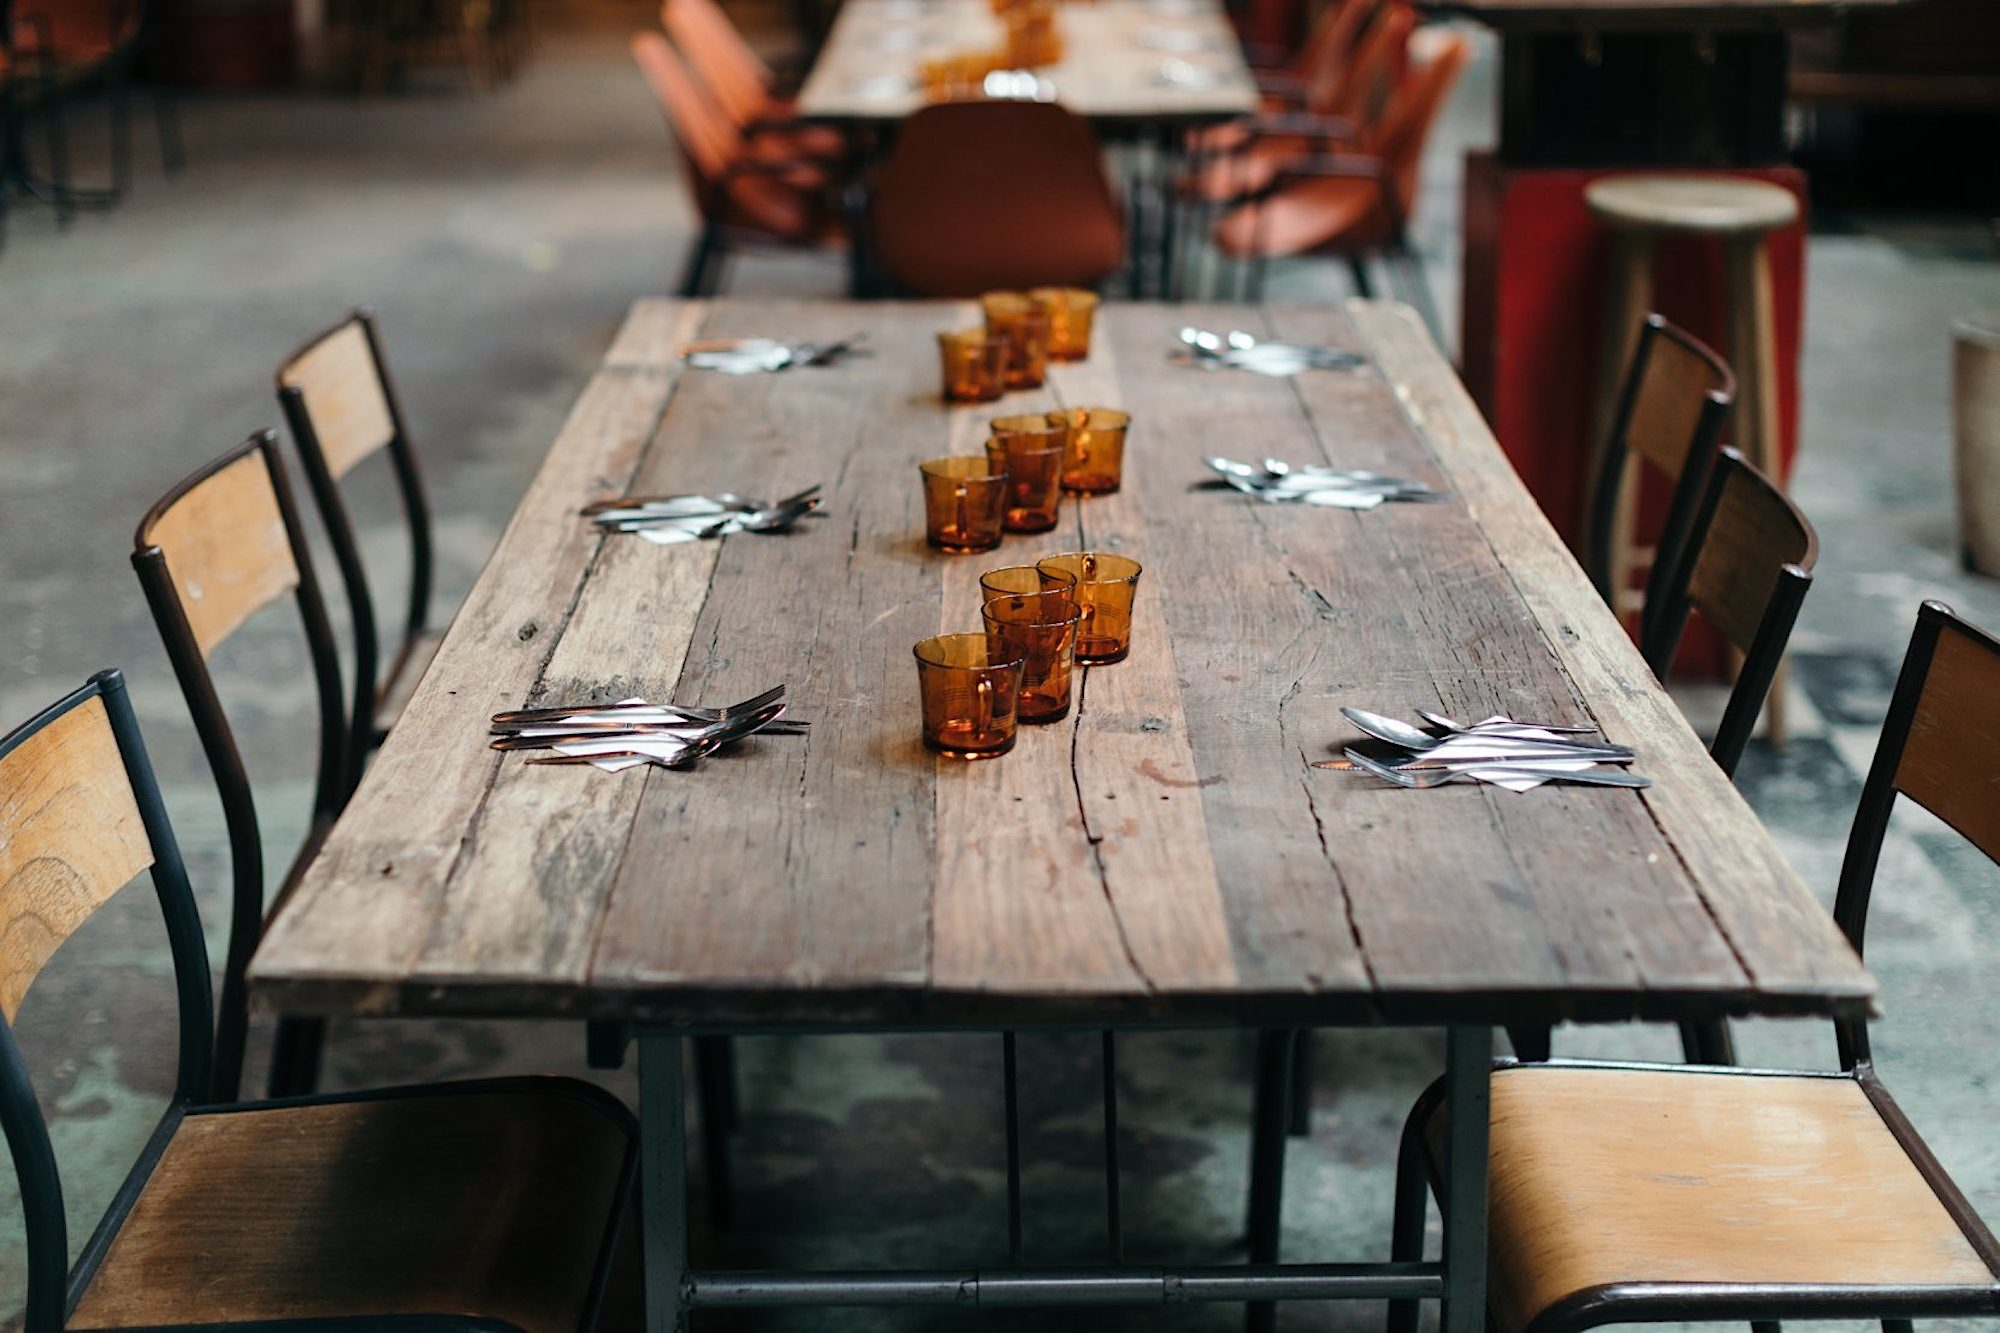 A timber table at the bohemian bar and eatery le Comptoir Général on the banks of the Canal Saint Martin.